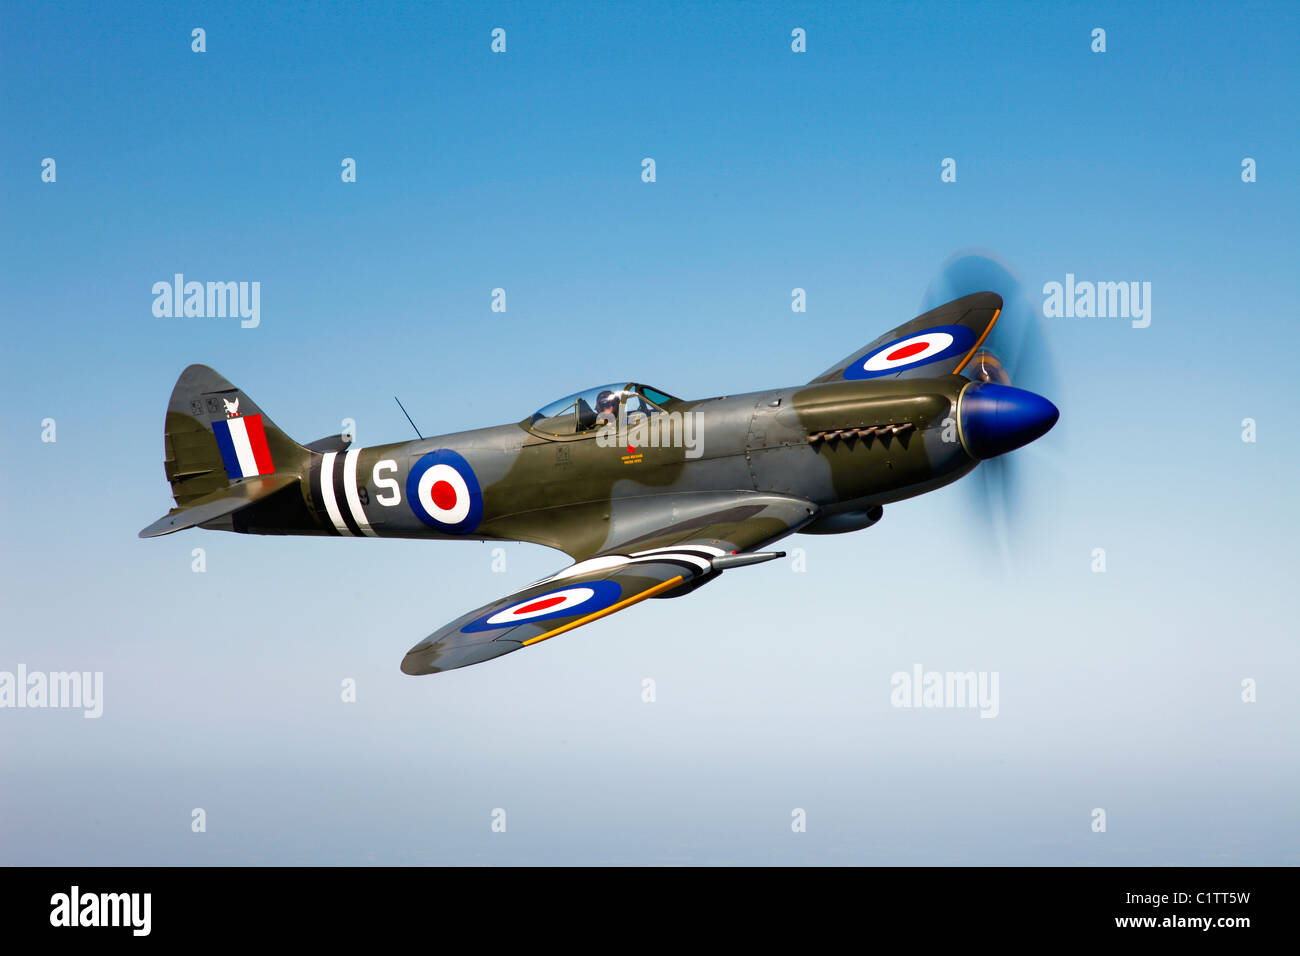 A Supermarine Spitfire Mk-18 in flight near West Chester County, Pennsylvania. - Stock Image